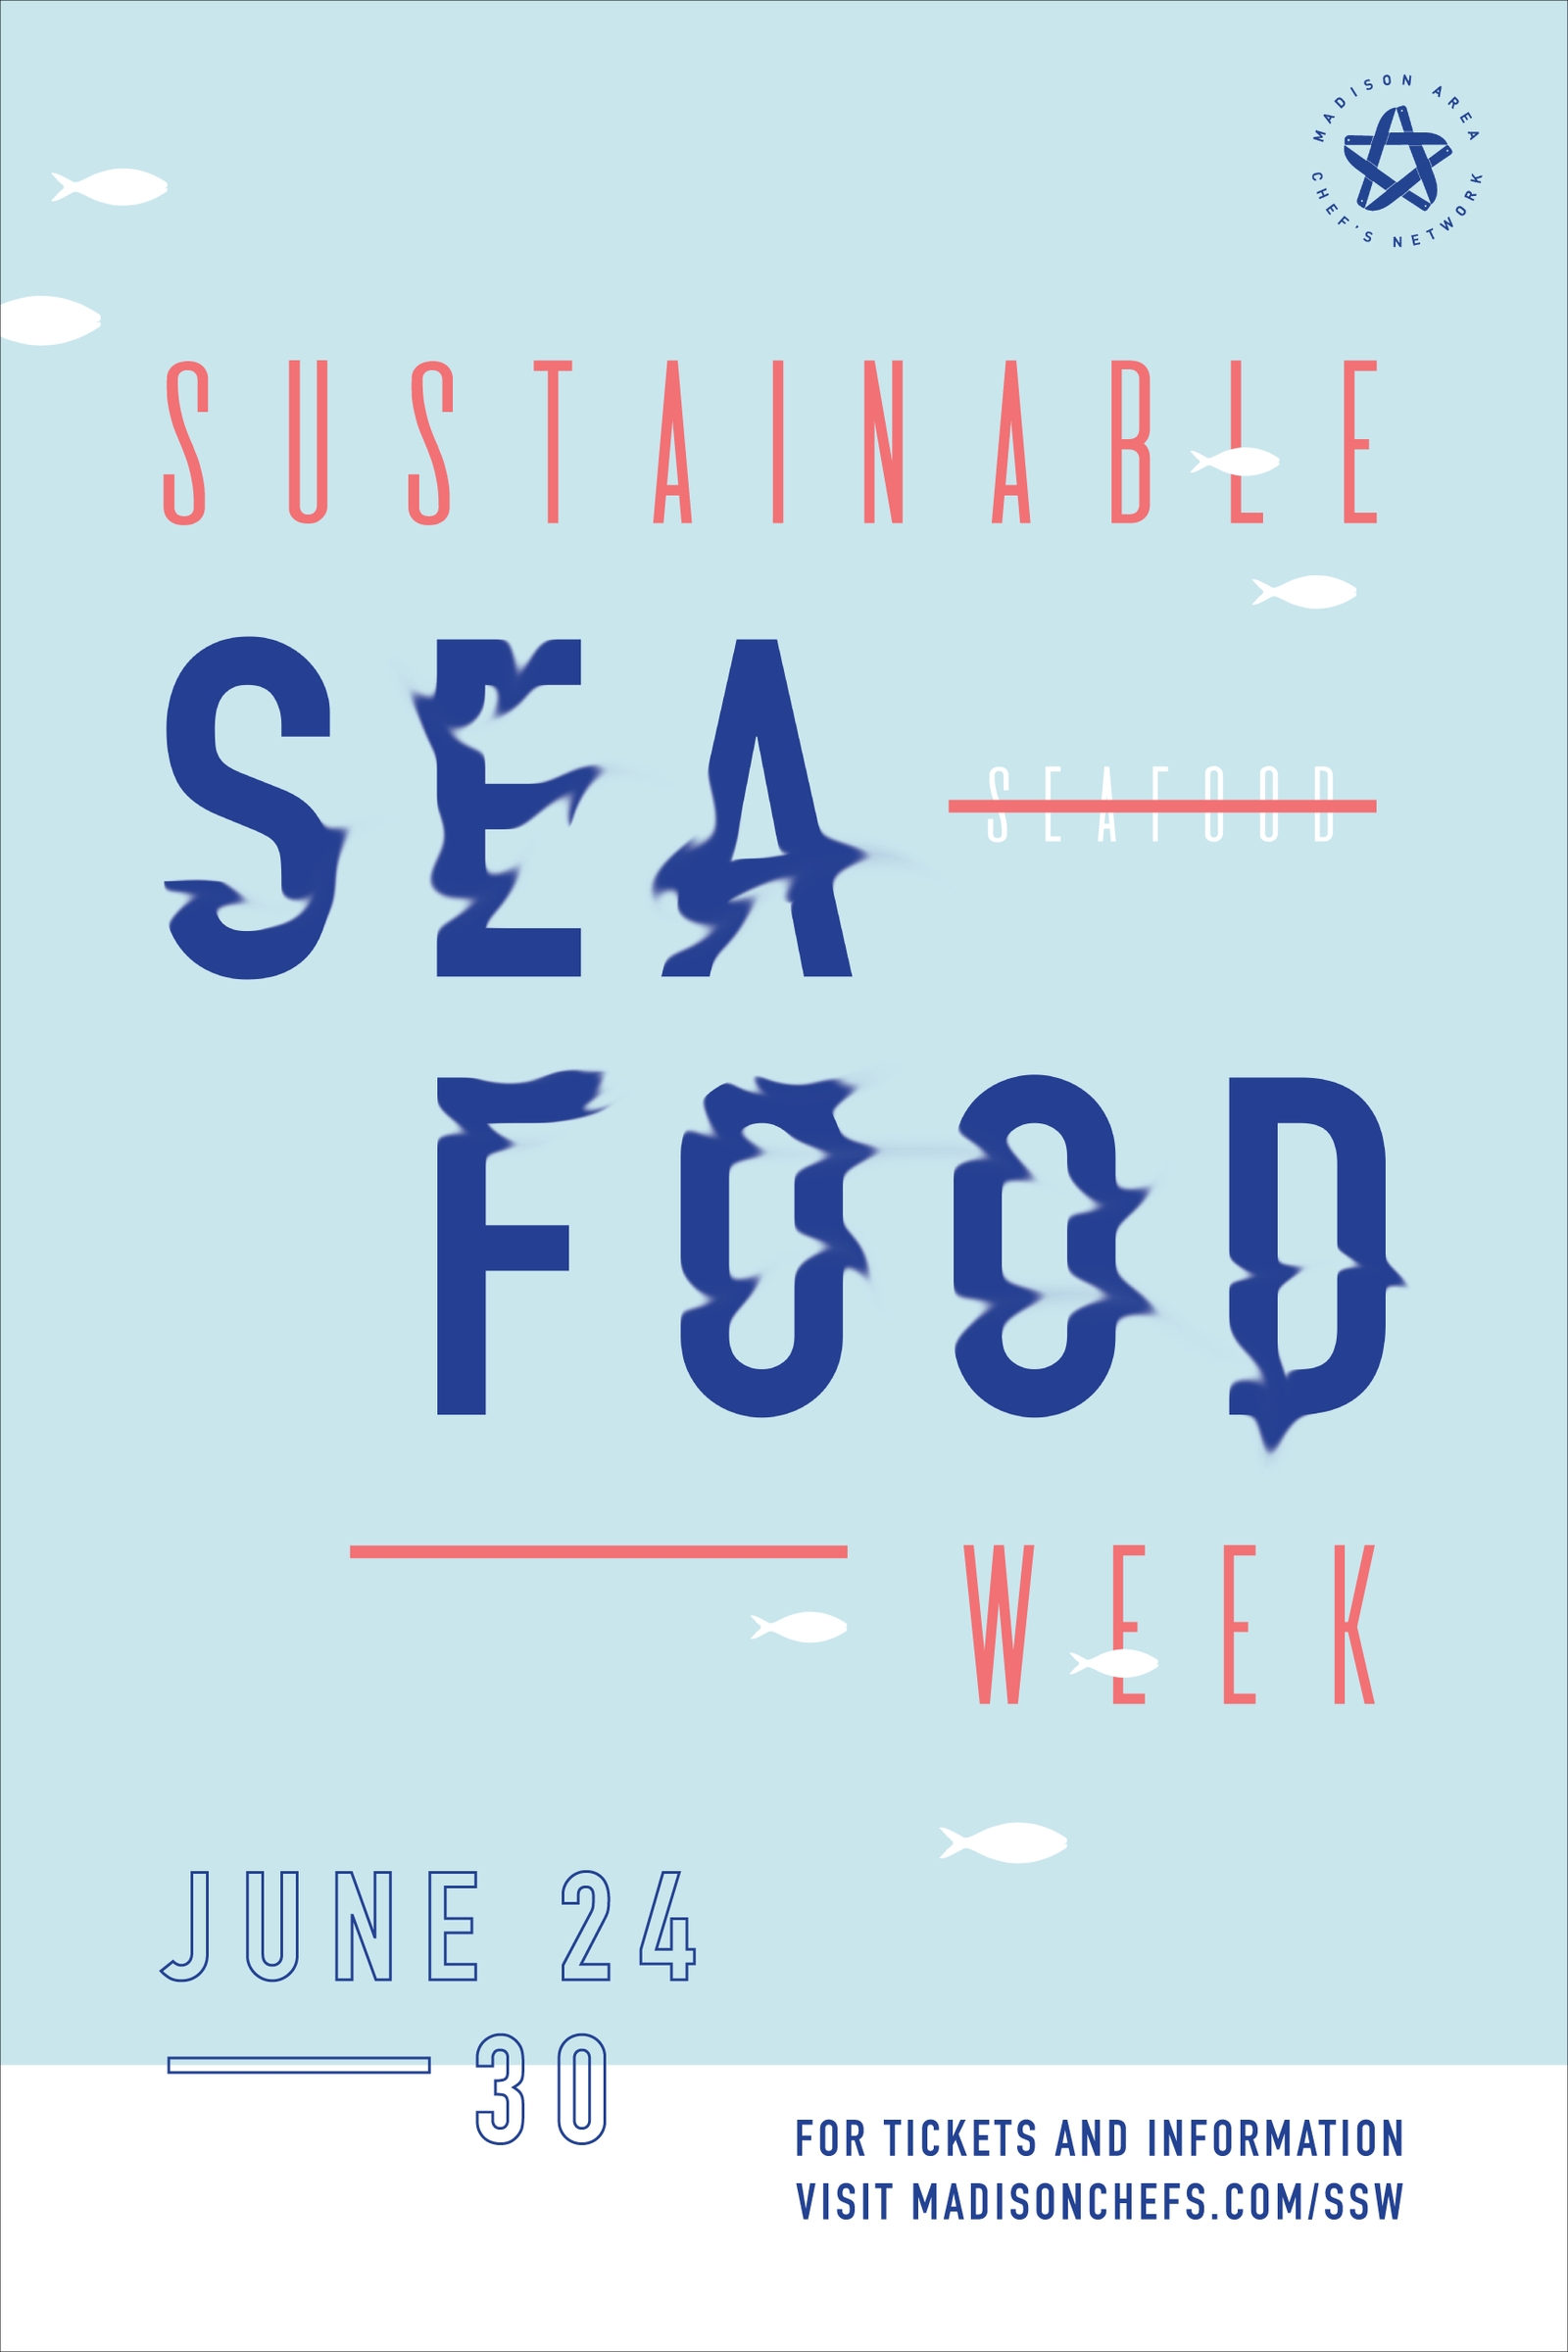 Poster design, illustration, and typography for Sustainable Seafood Week 2018 by Christie Evenson